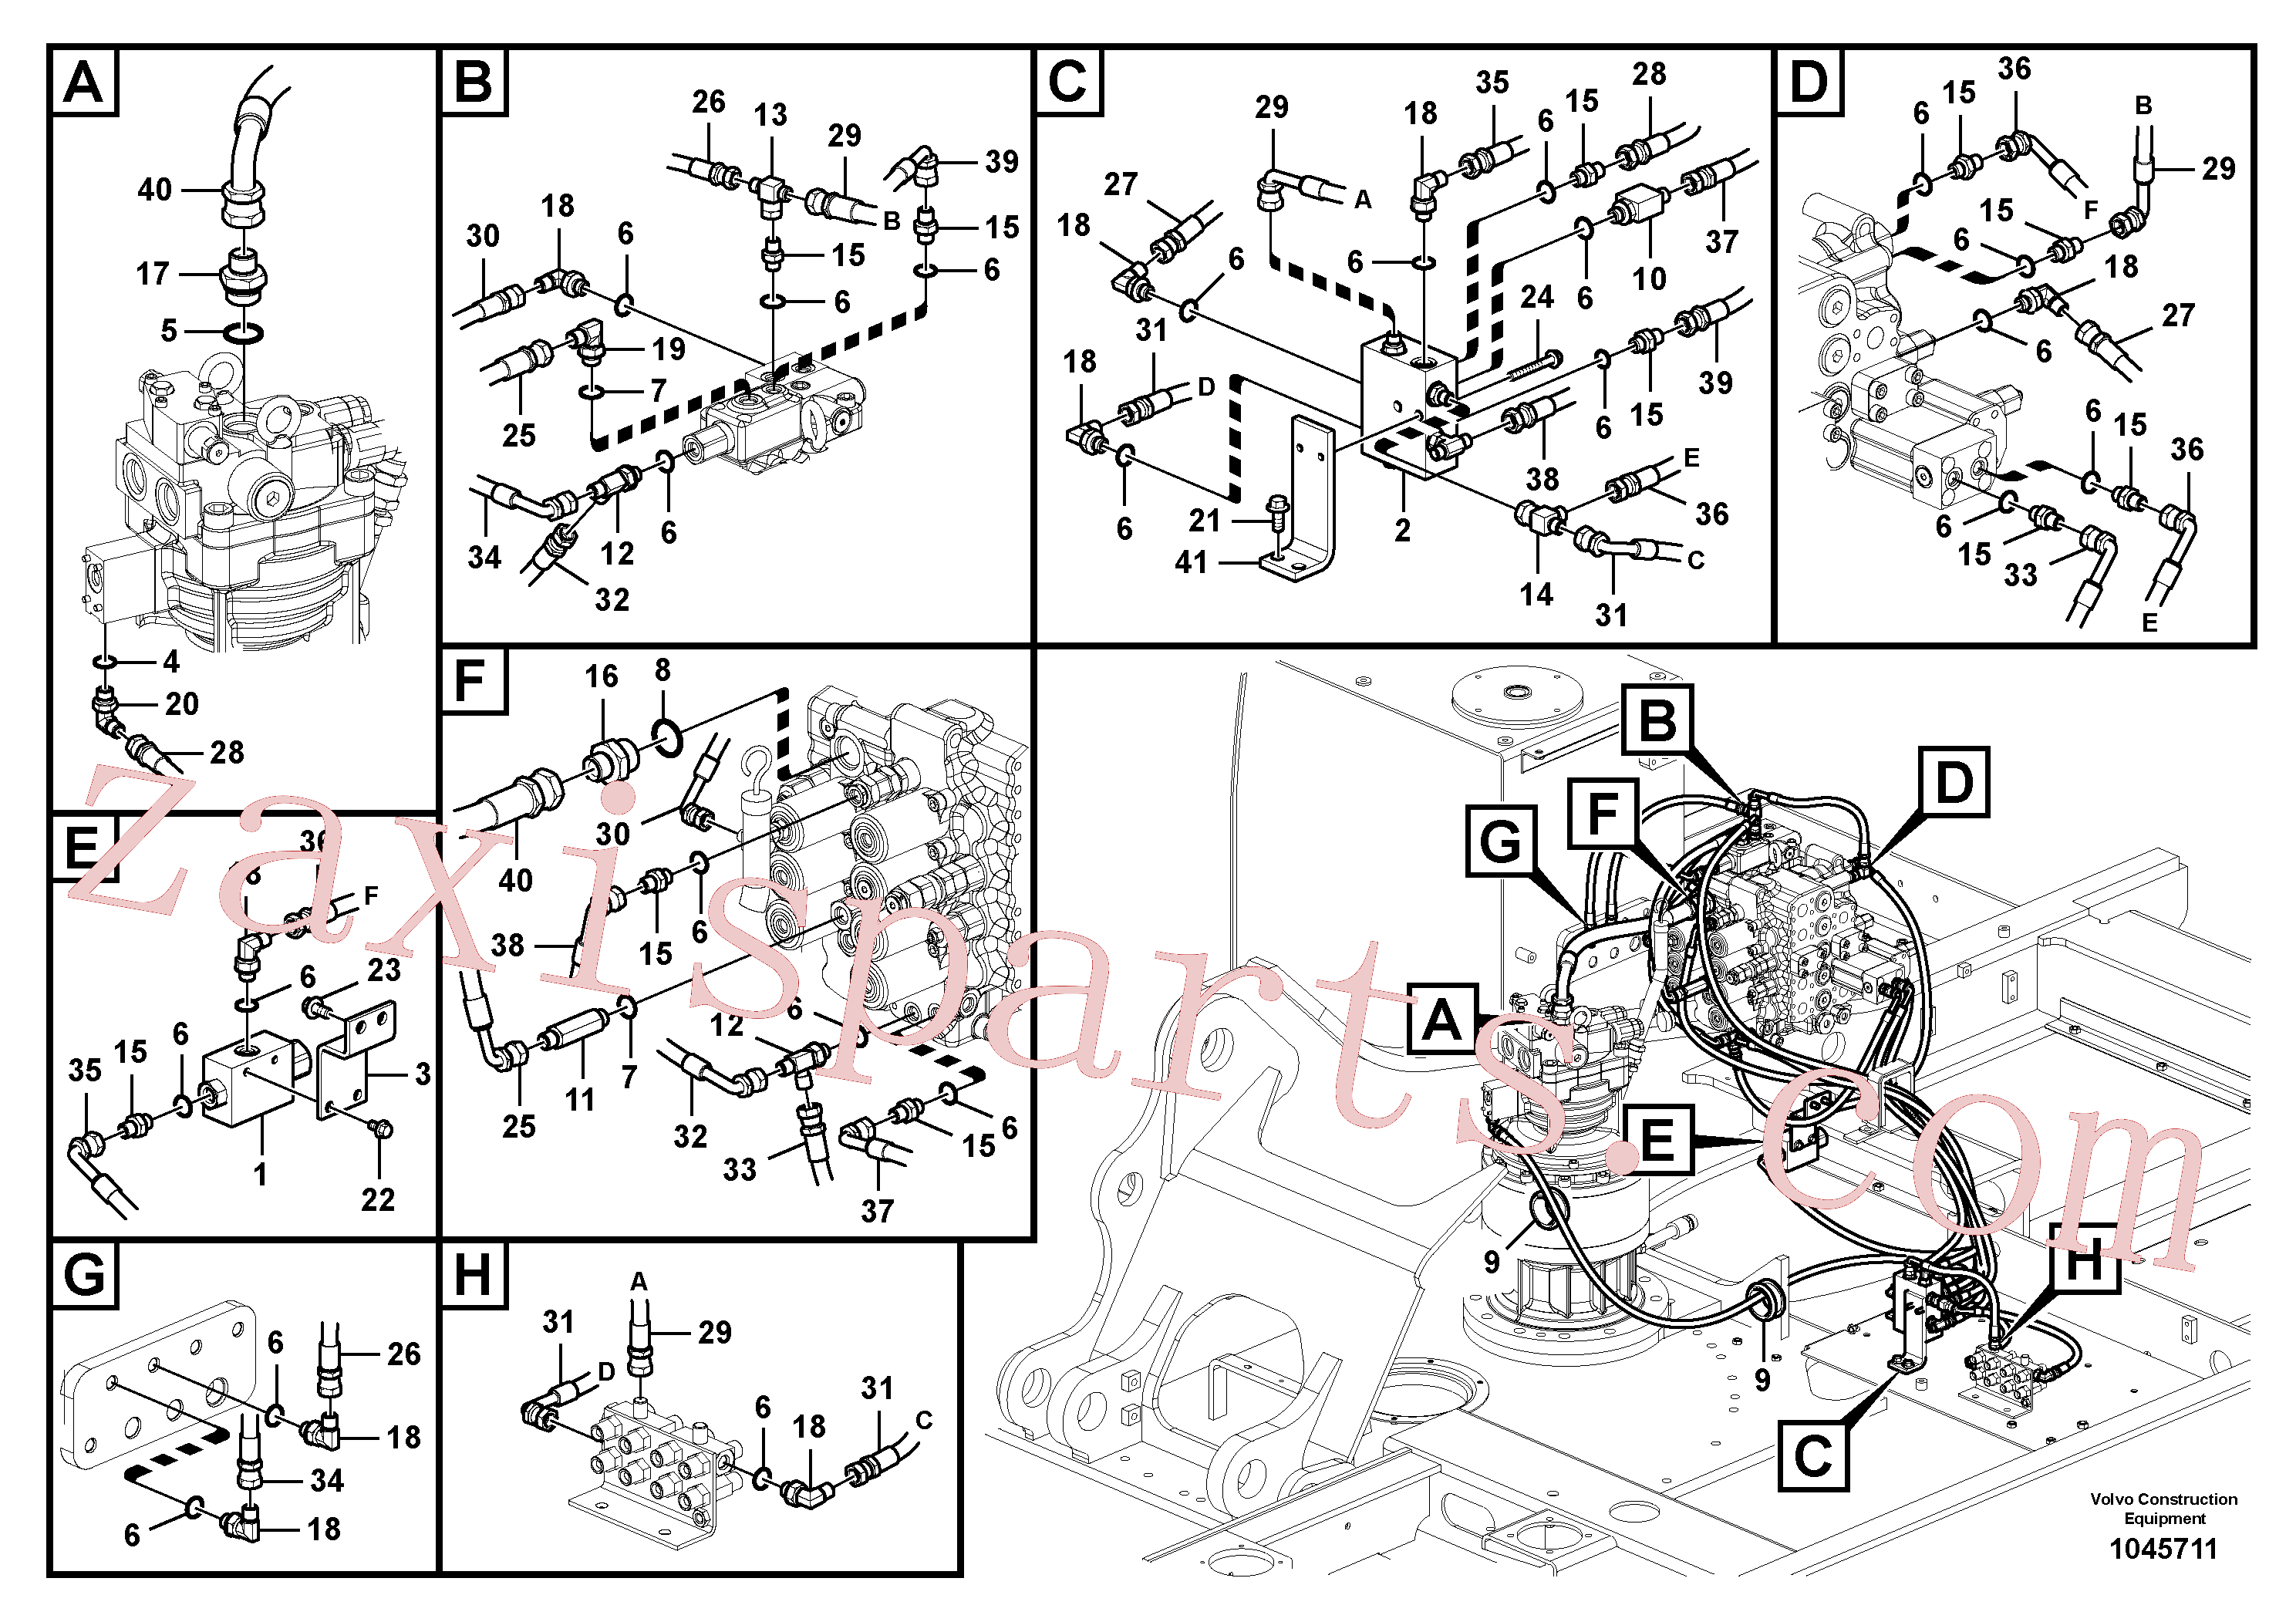 SA9451-02231 for Volvo Servo system, control valve piping.(1045711 assembly)